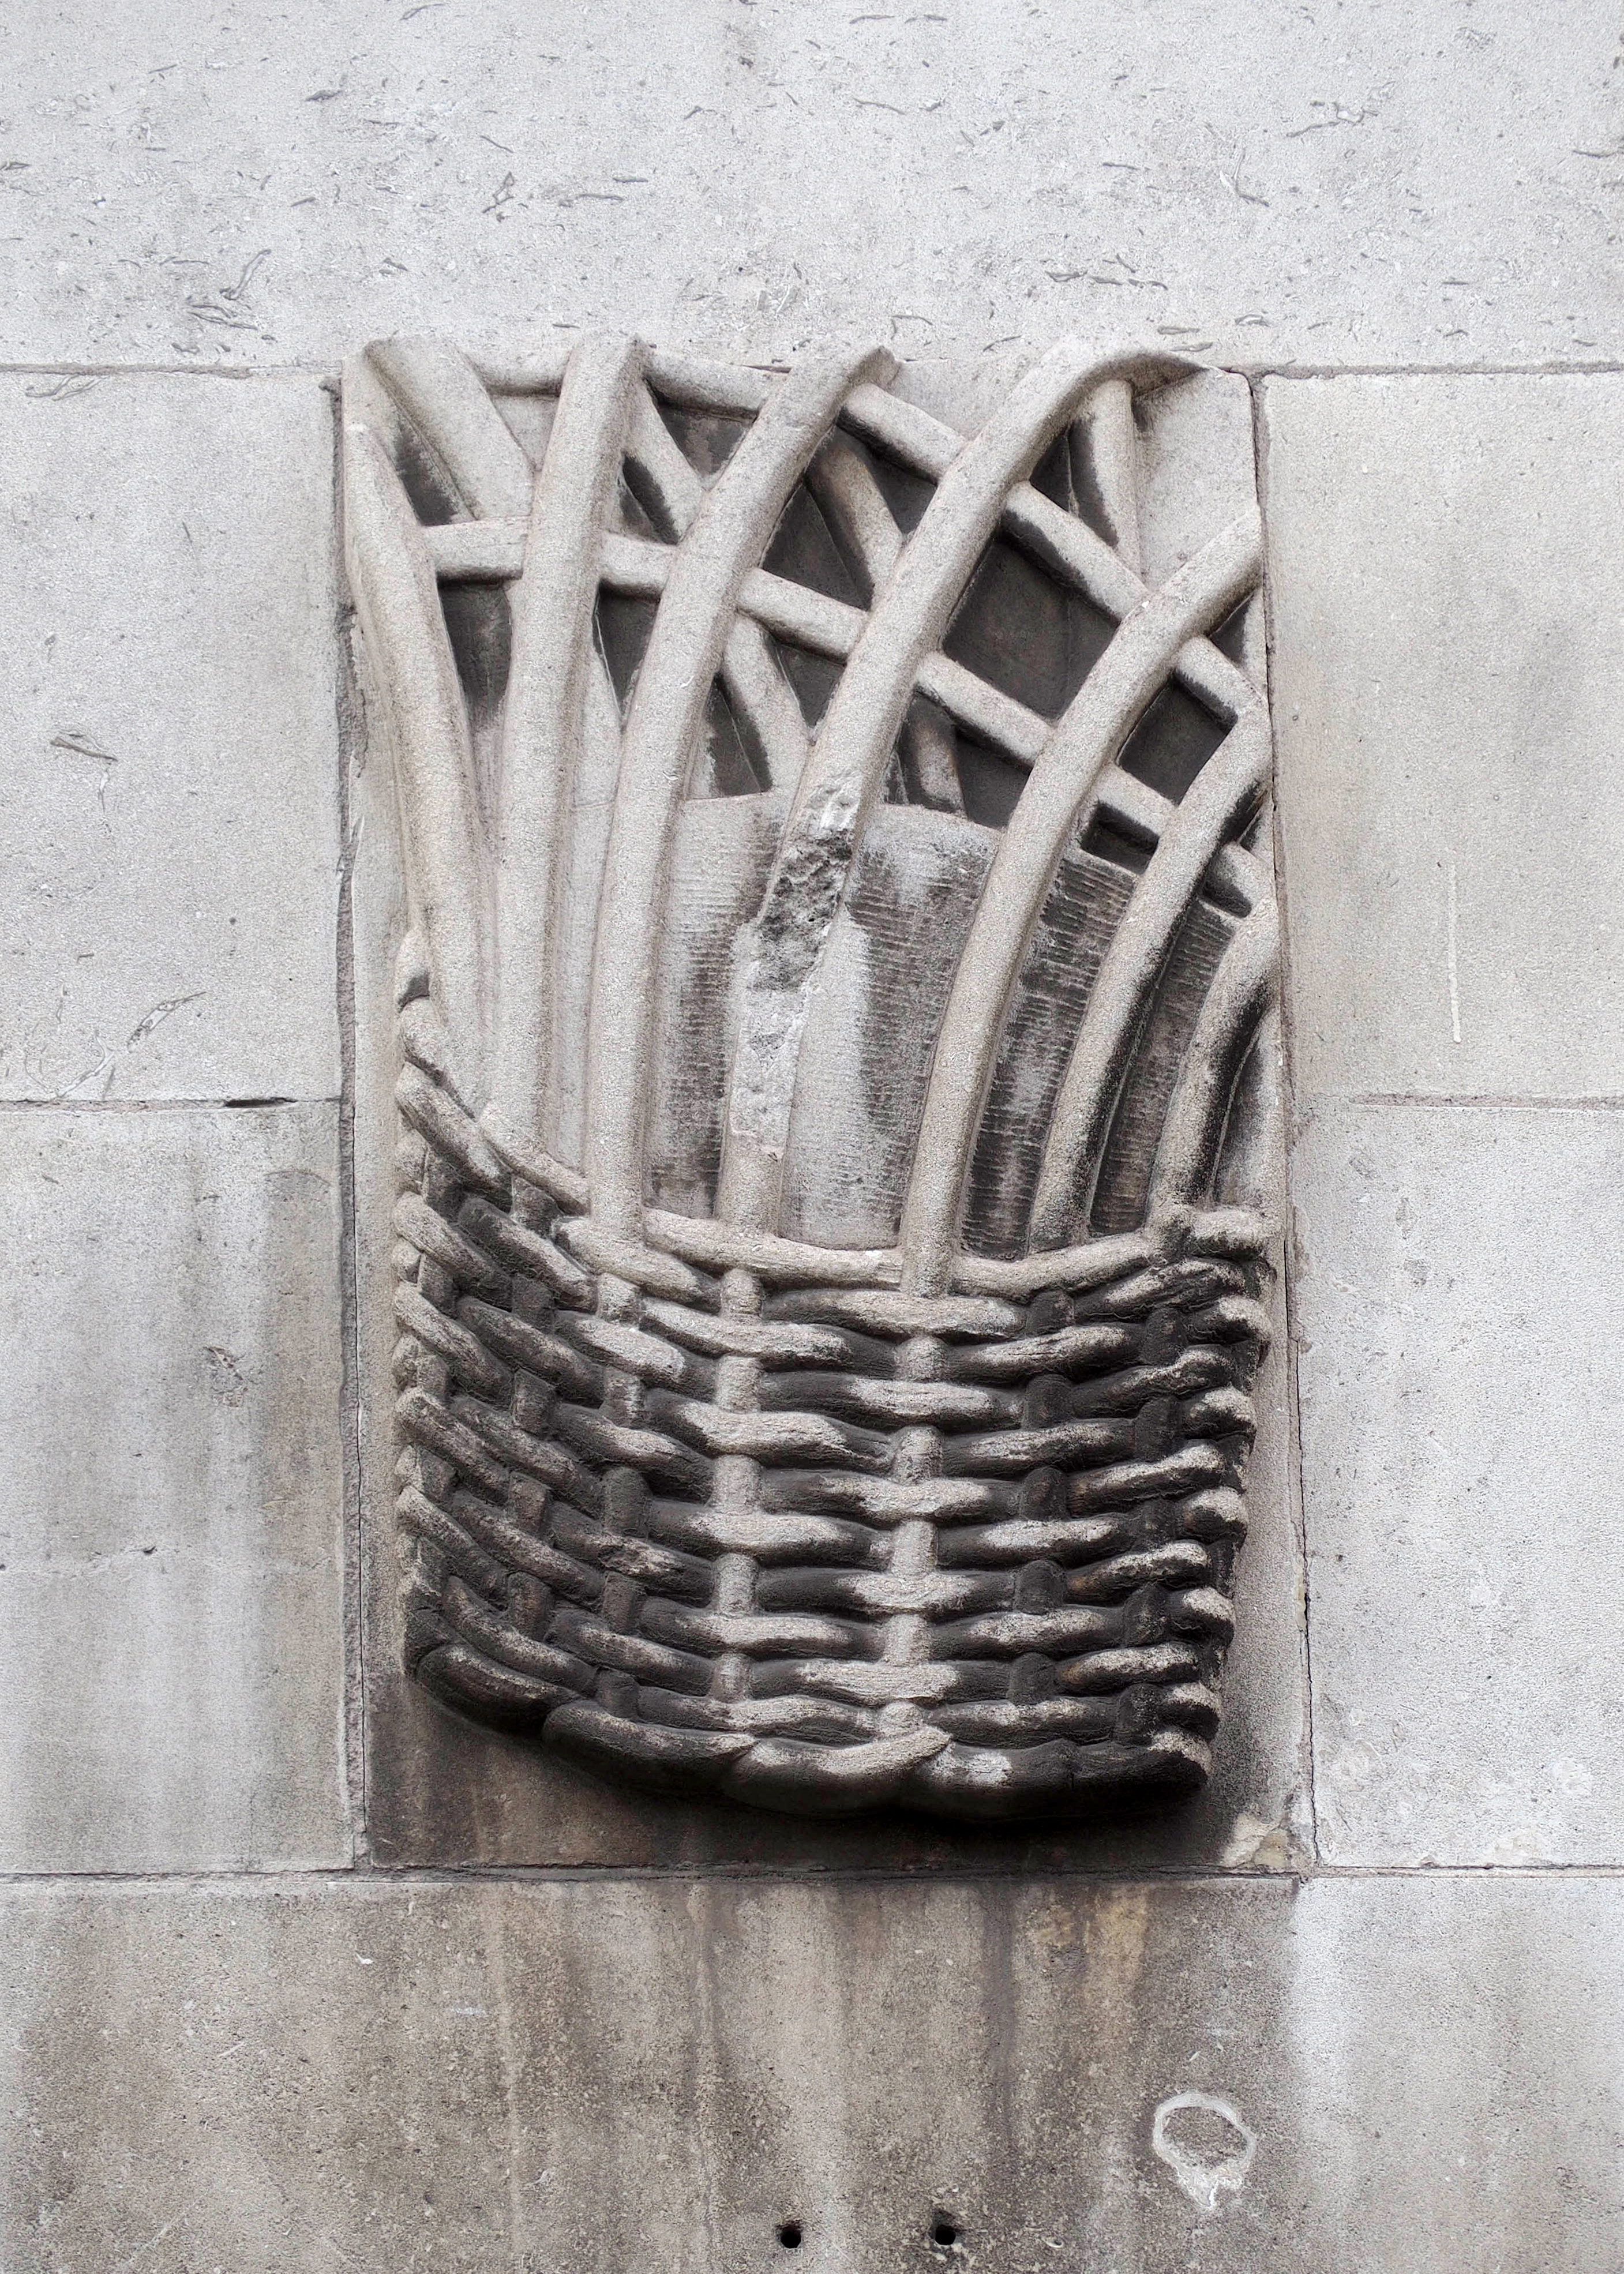 Relief from the Royal School for the Blind in Liverpool showing a woven basket.